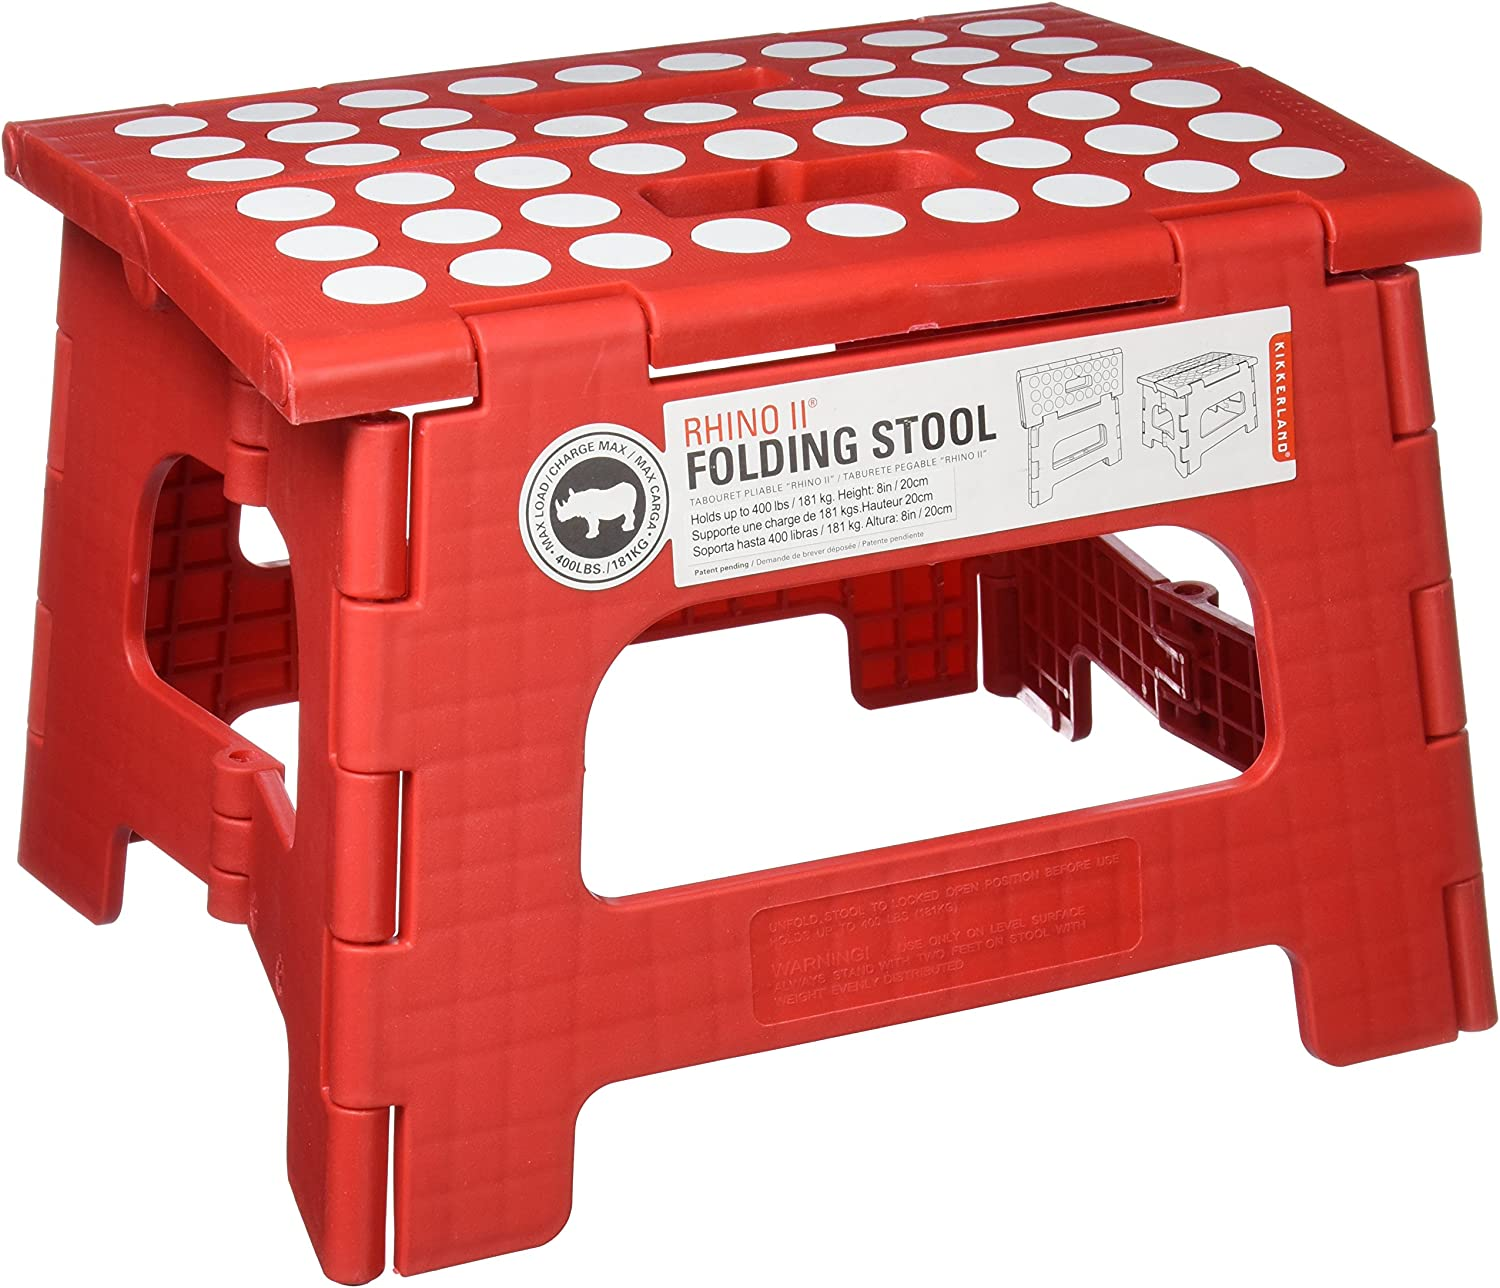 Amazon.com: Kikkerland Rhino II Step Stool, Red: Kitchen & Dining